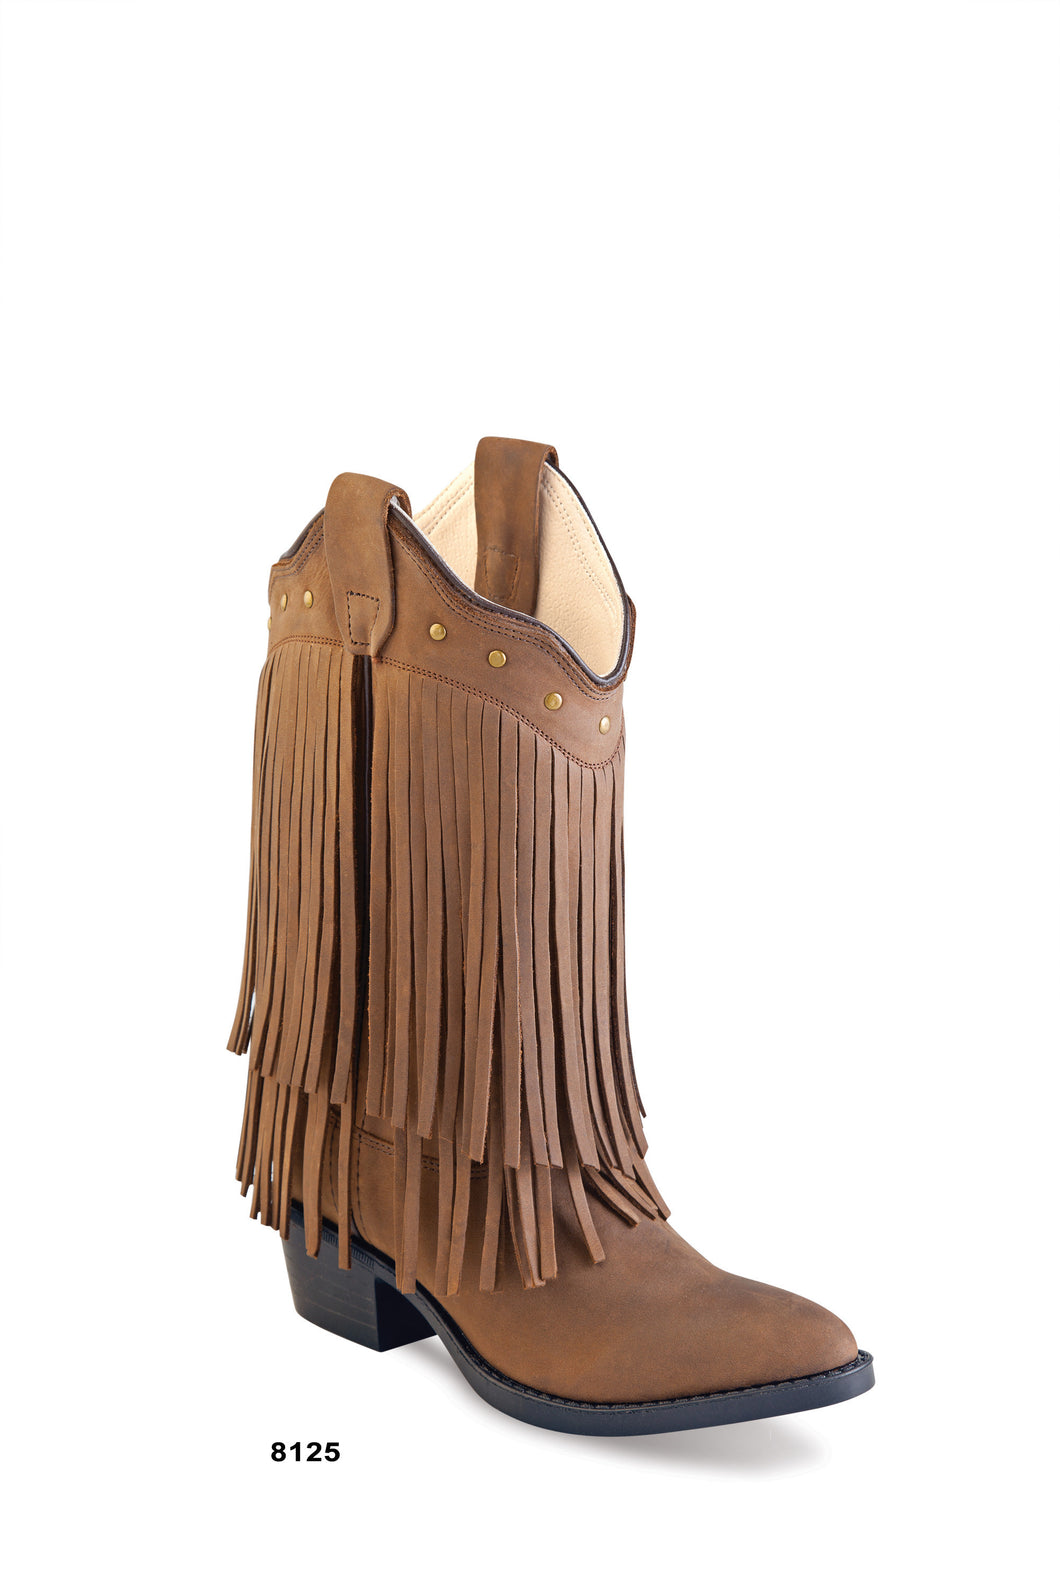 Jama Old West 8125 Girls Fringe Boot